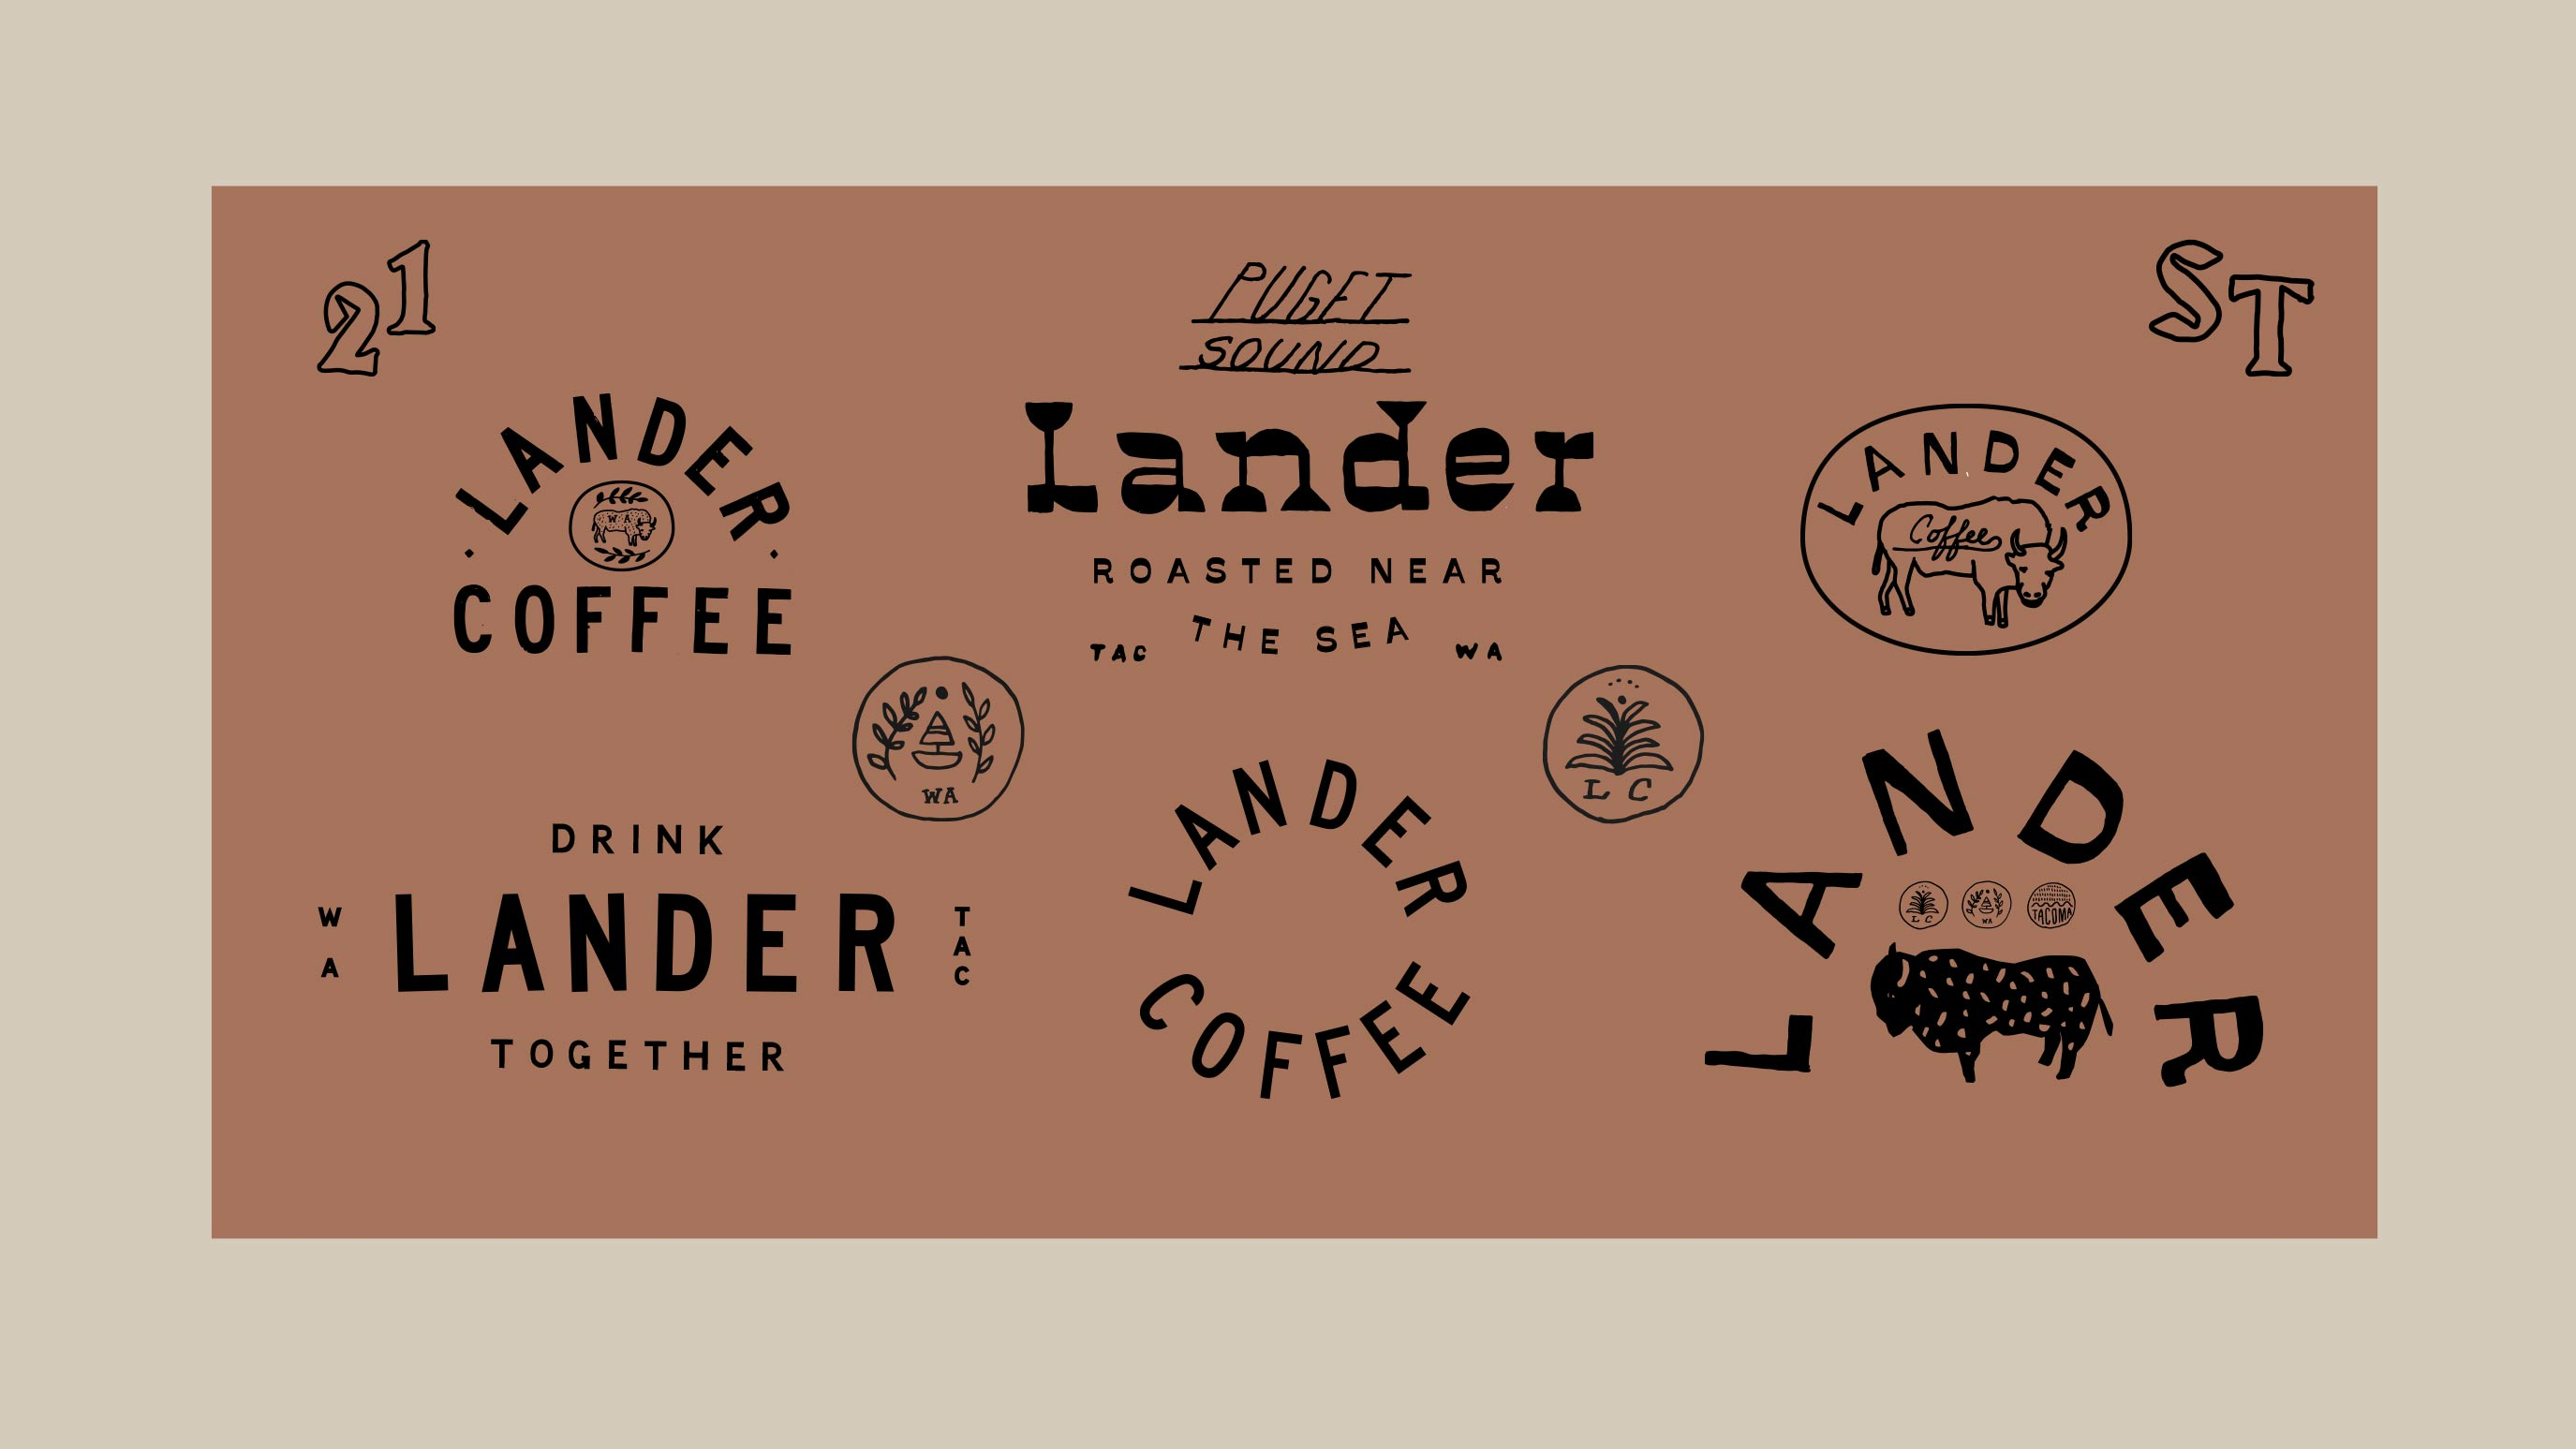 siotes-branding-coffee-lander-product-pattern-design-seattle-tacoma-studio-kids-espresso-3